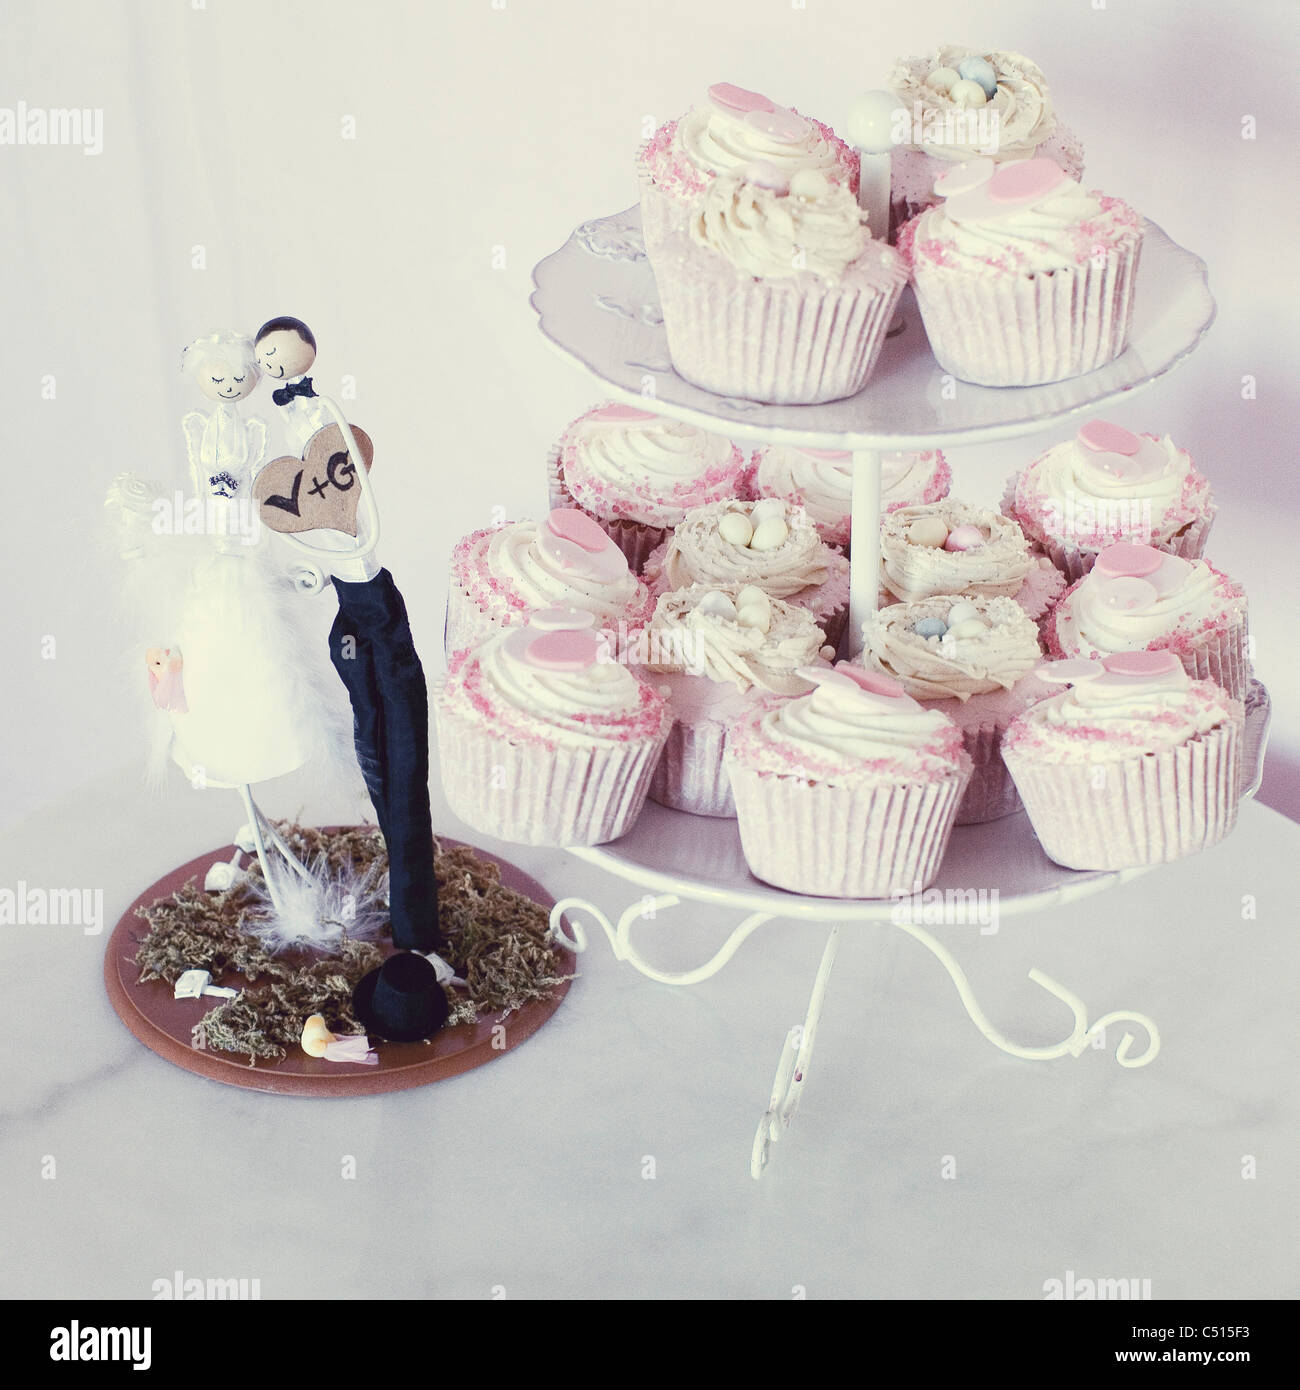 Wedding cupcakes on cake stand next to bride and groom cake topper ...